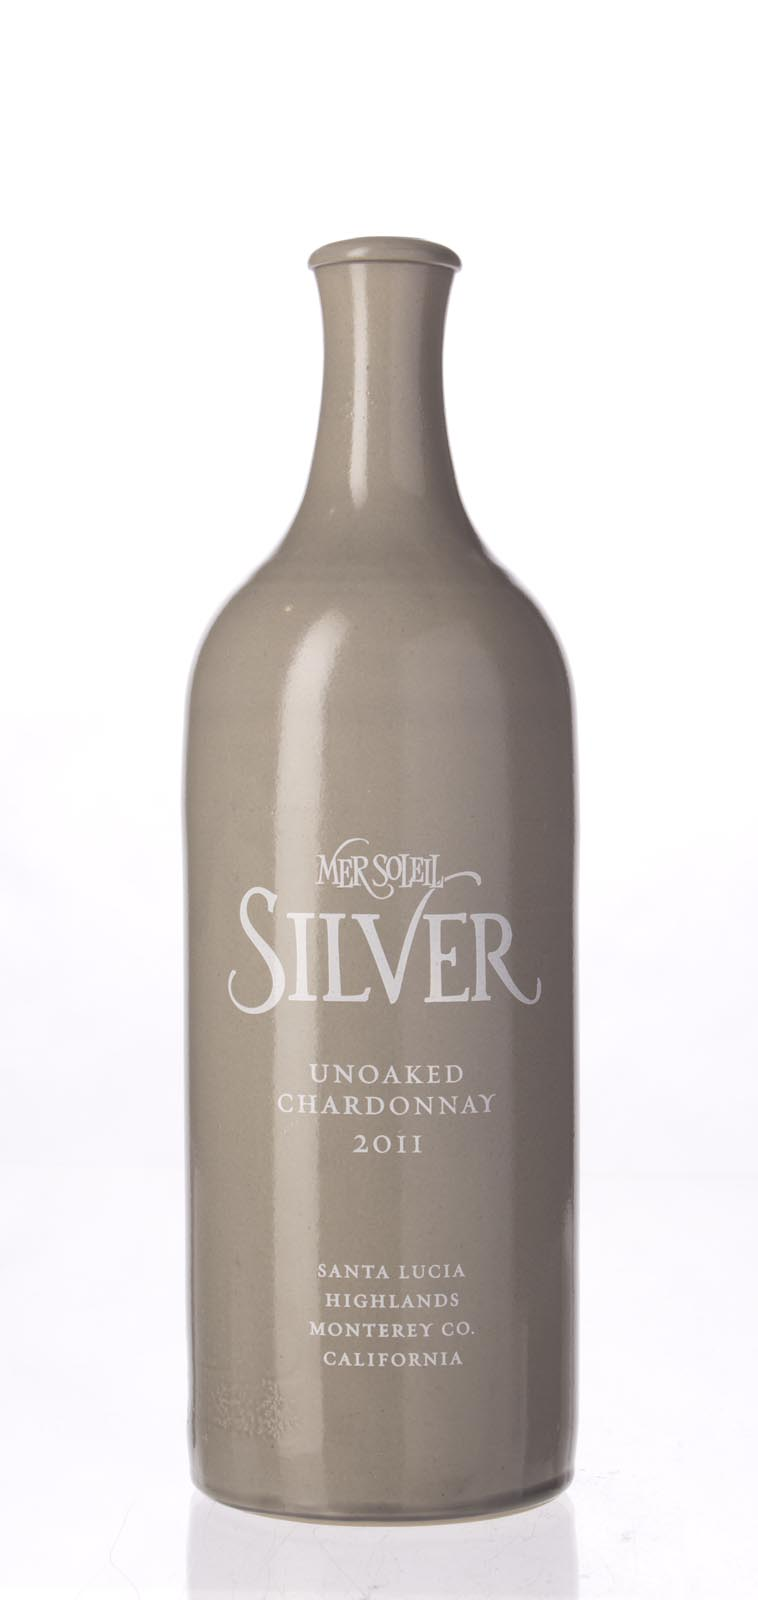 Mer et Soleil Chardonnay Silver Unoaked 2011, 750ml () from The BPW - Merchants of rare and fine wines.